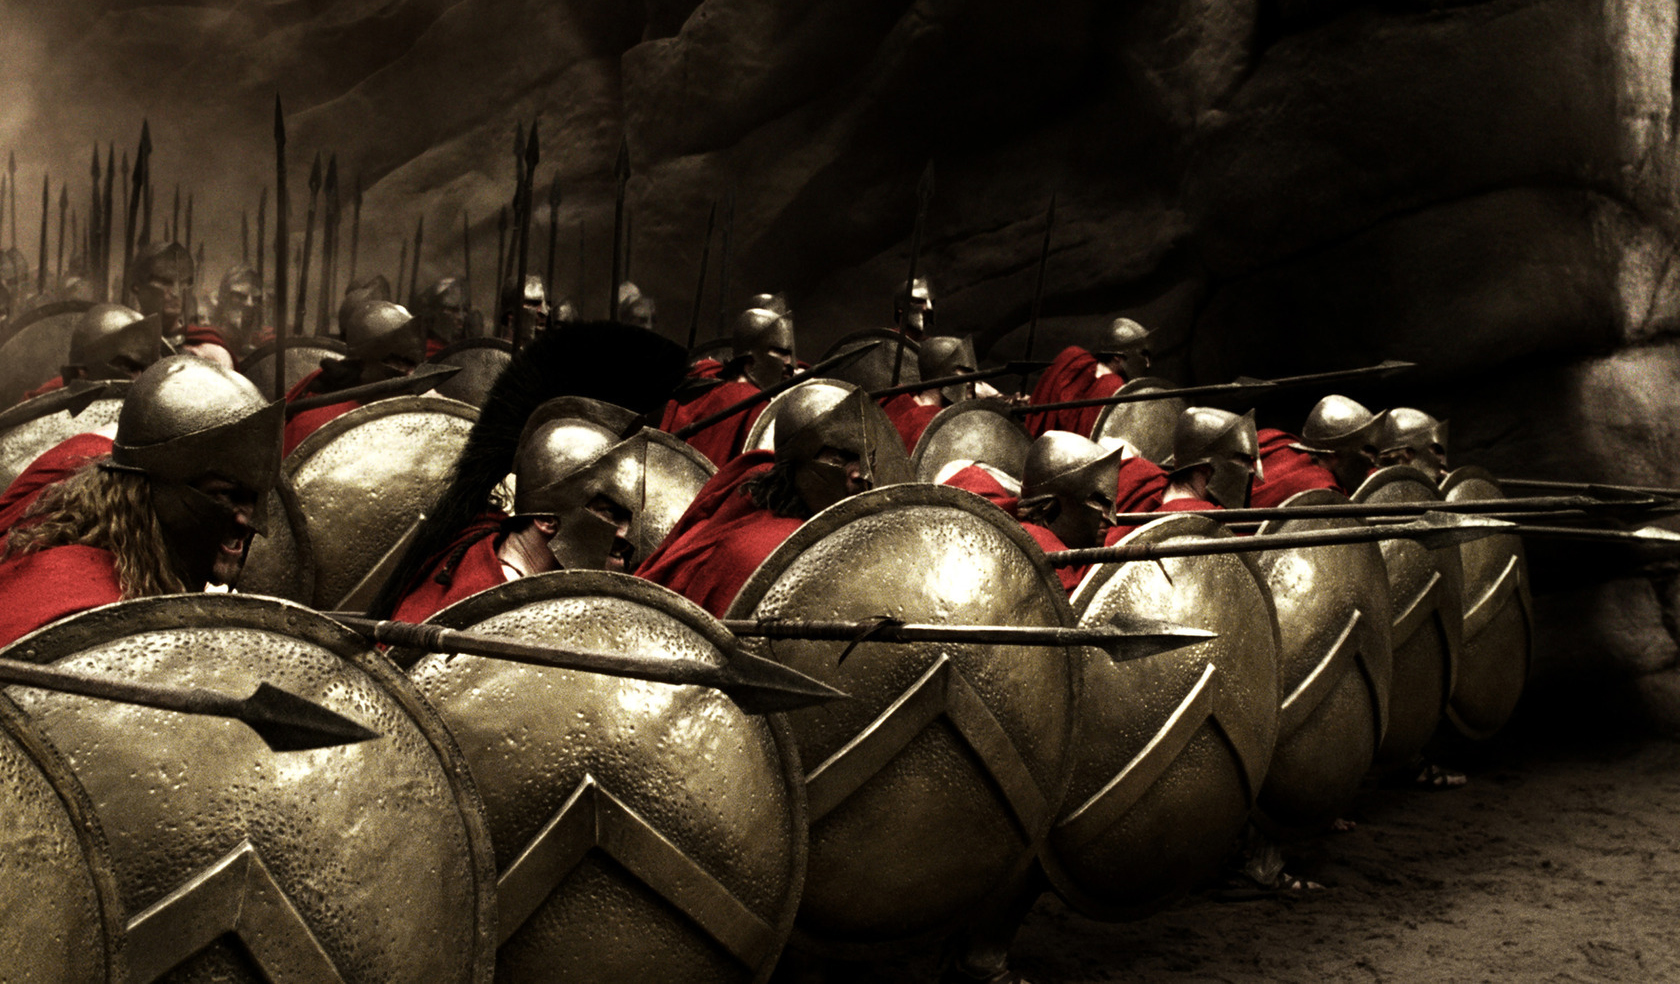 The Greek Phalanx Formation